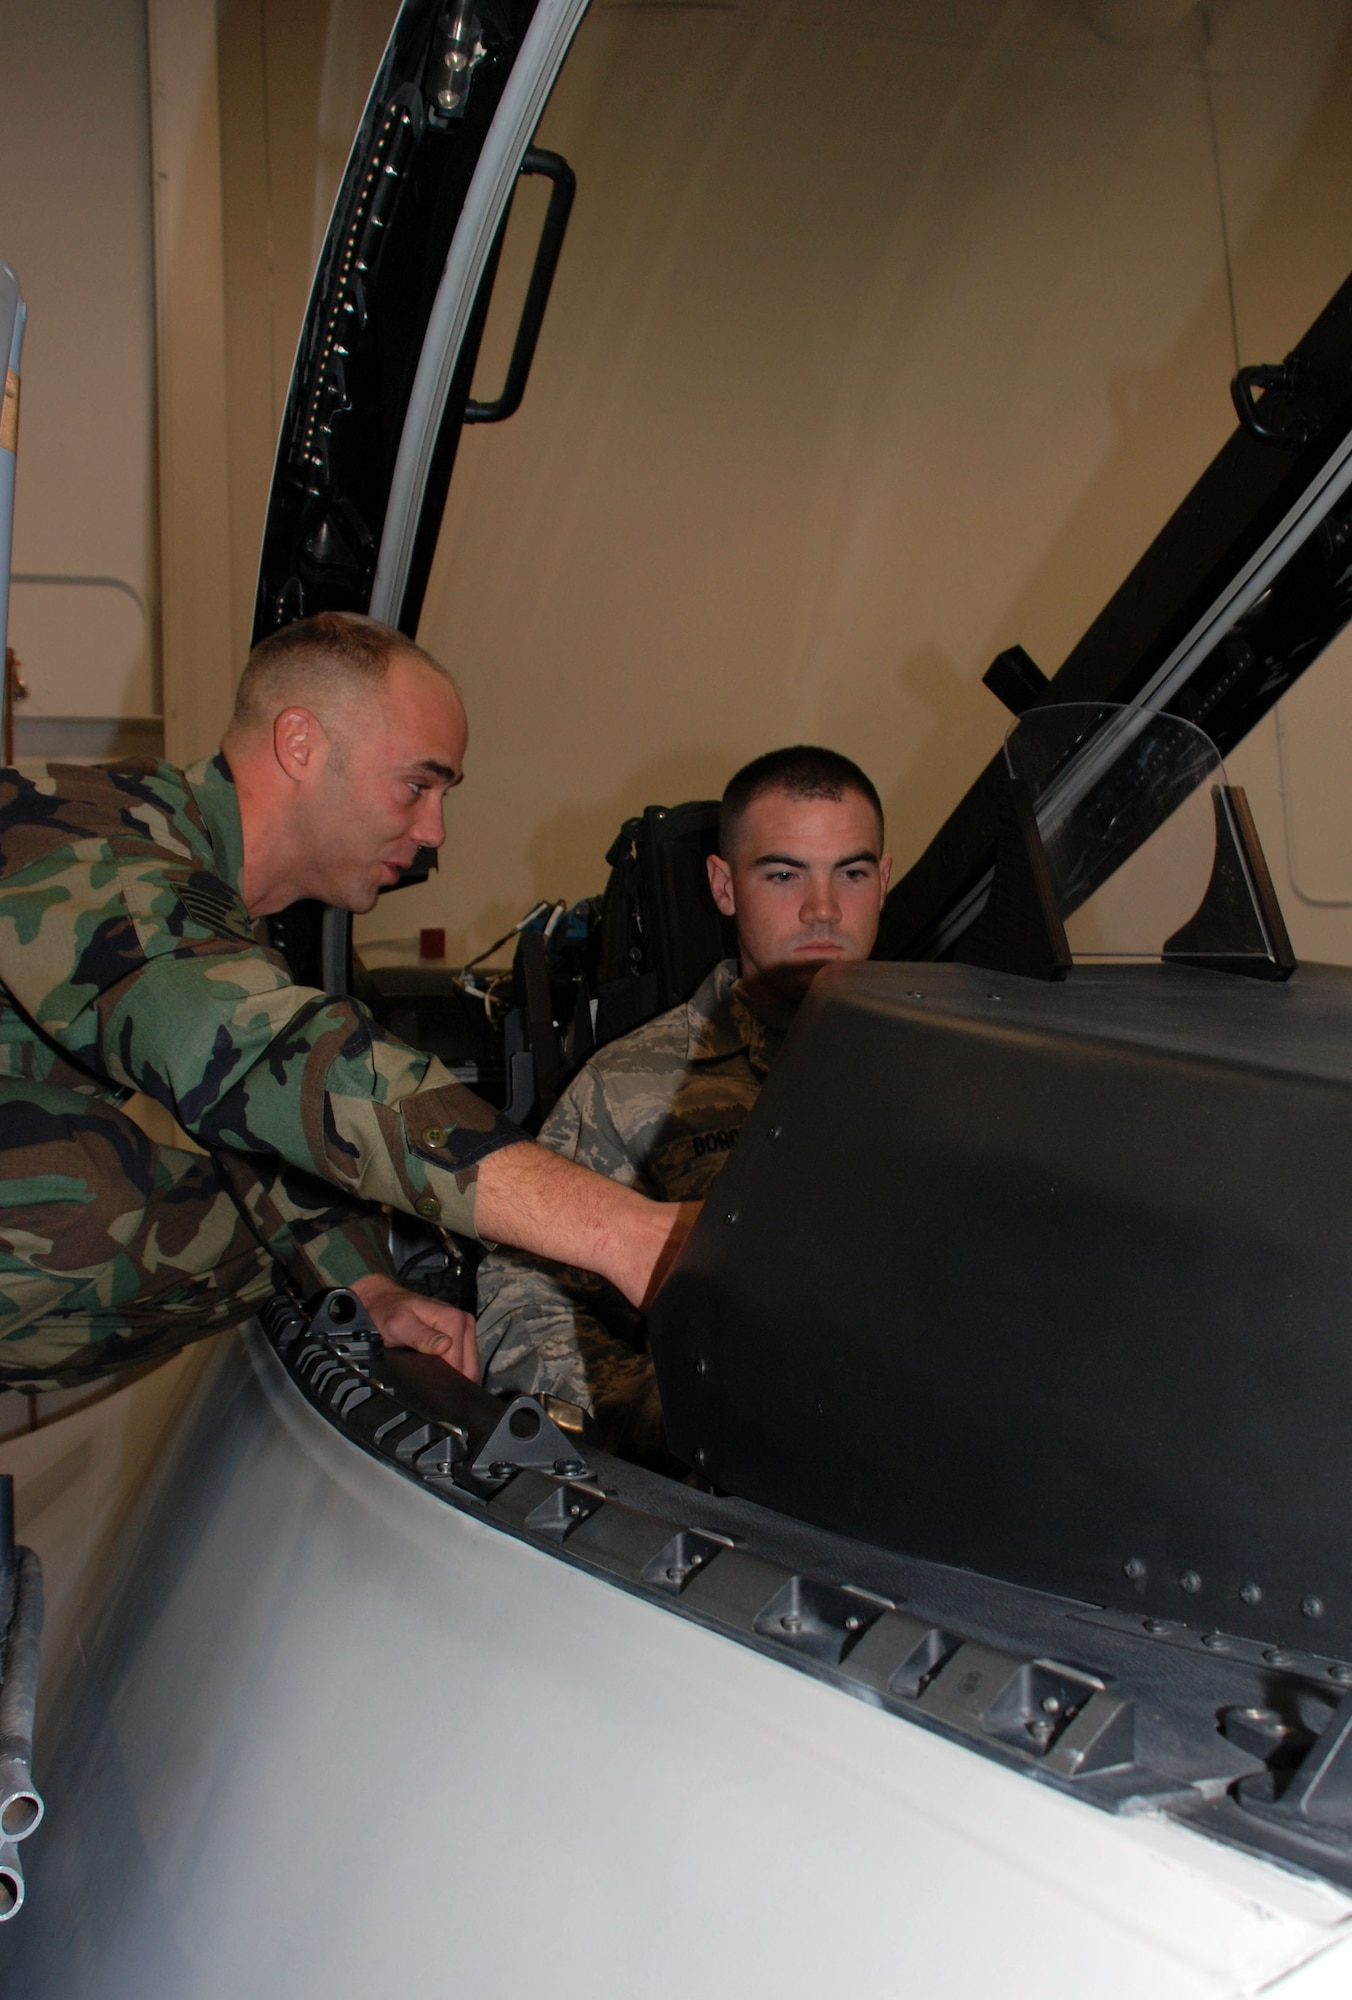 Staff Sgt. Chris Dippold shows Airman 1st Class Michael Borden the inside of a Raptor cockpit trainer Jan. 29 at Sheppard Air Force Base, Texas. Airman Borden is one of the first Airmen to attend the F-22 Raptor Crew Chief training course in the new Raptor Maintenace Training Facility. Sergeant Dippold is a course instructor with the 362nd Training Squadron. (U.S. Air Force photo/Airman 1st Class Jacob Corbin)